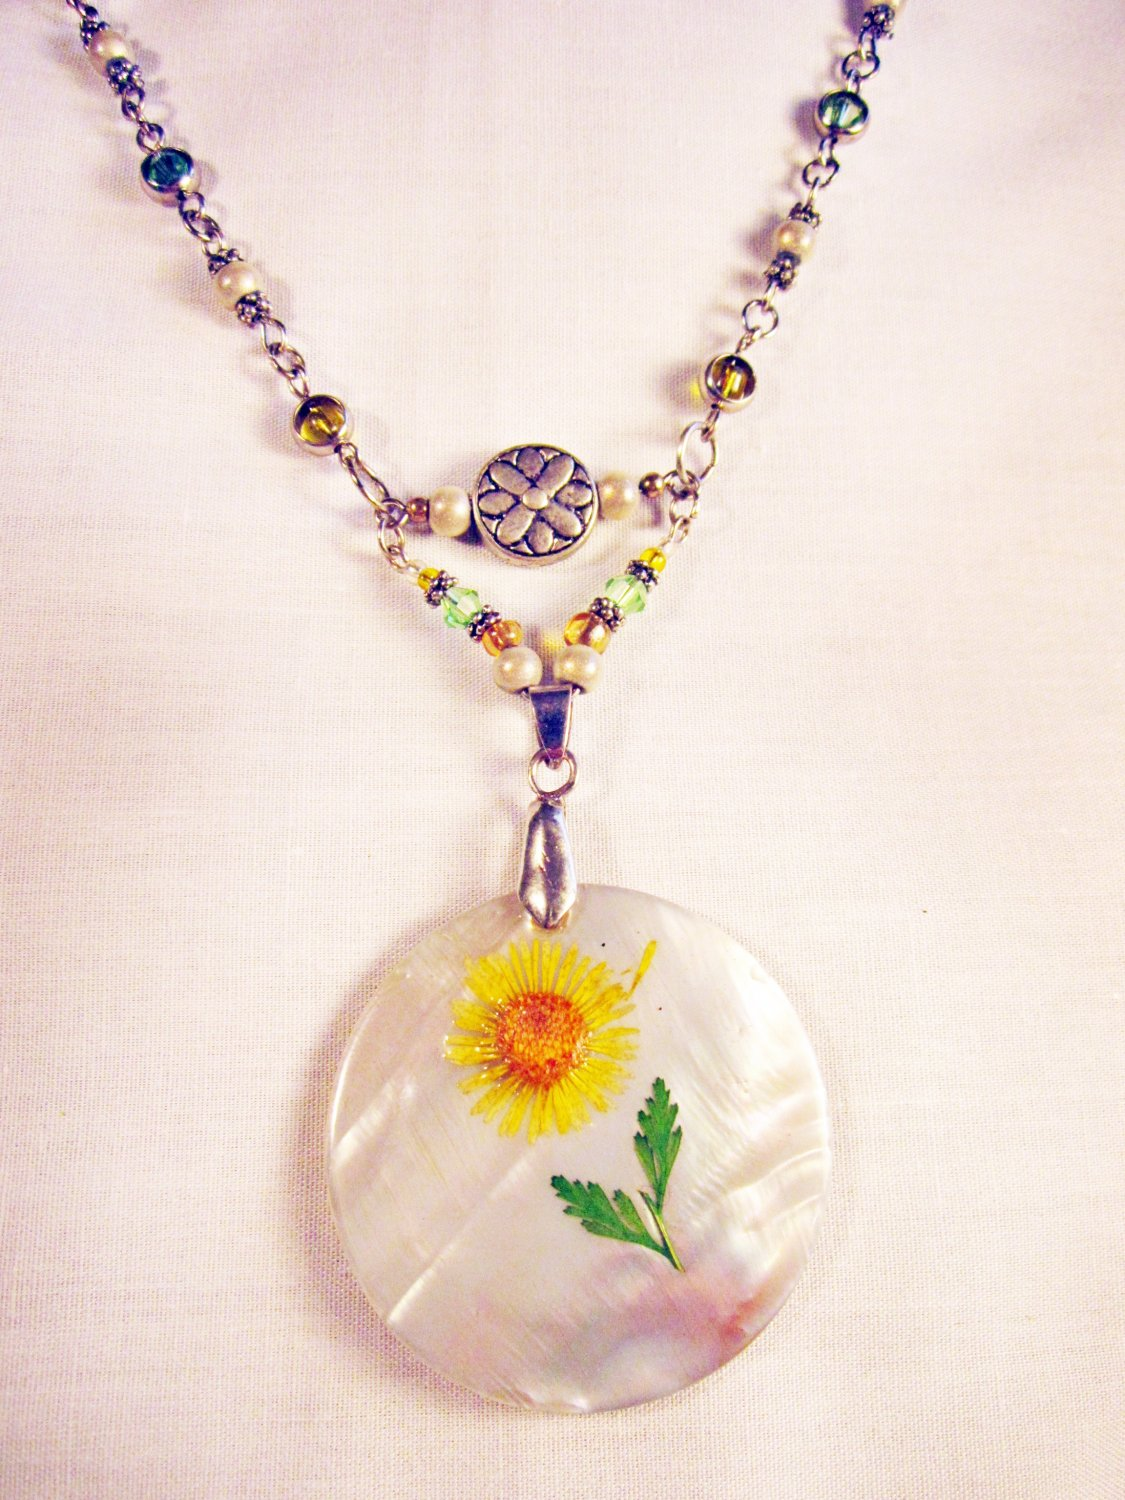 N9 - green and yellow necklace with pretty flower pendant